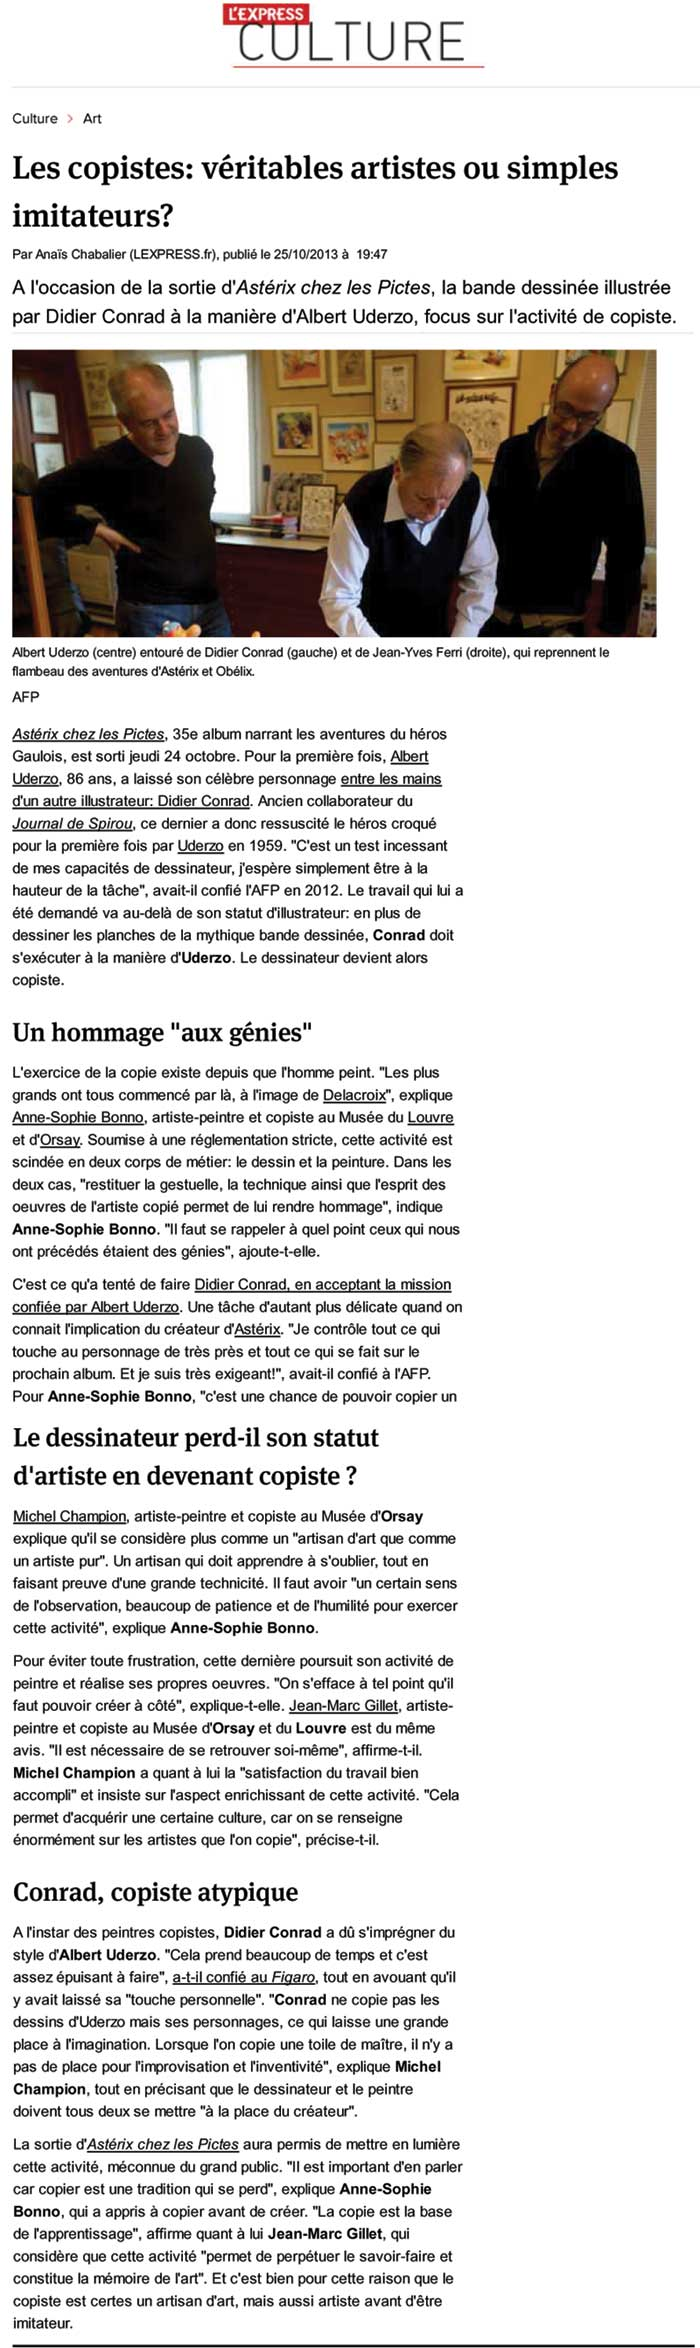 Article l'Express